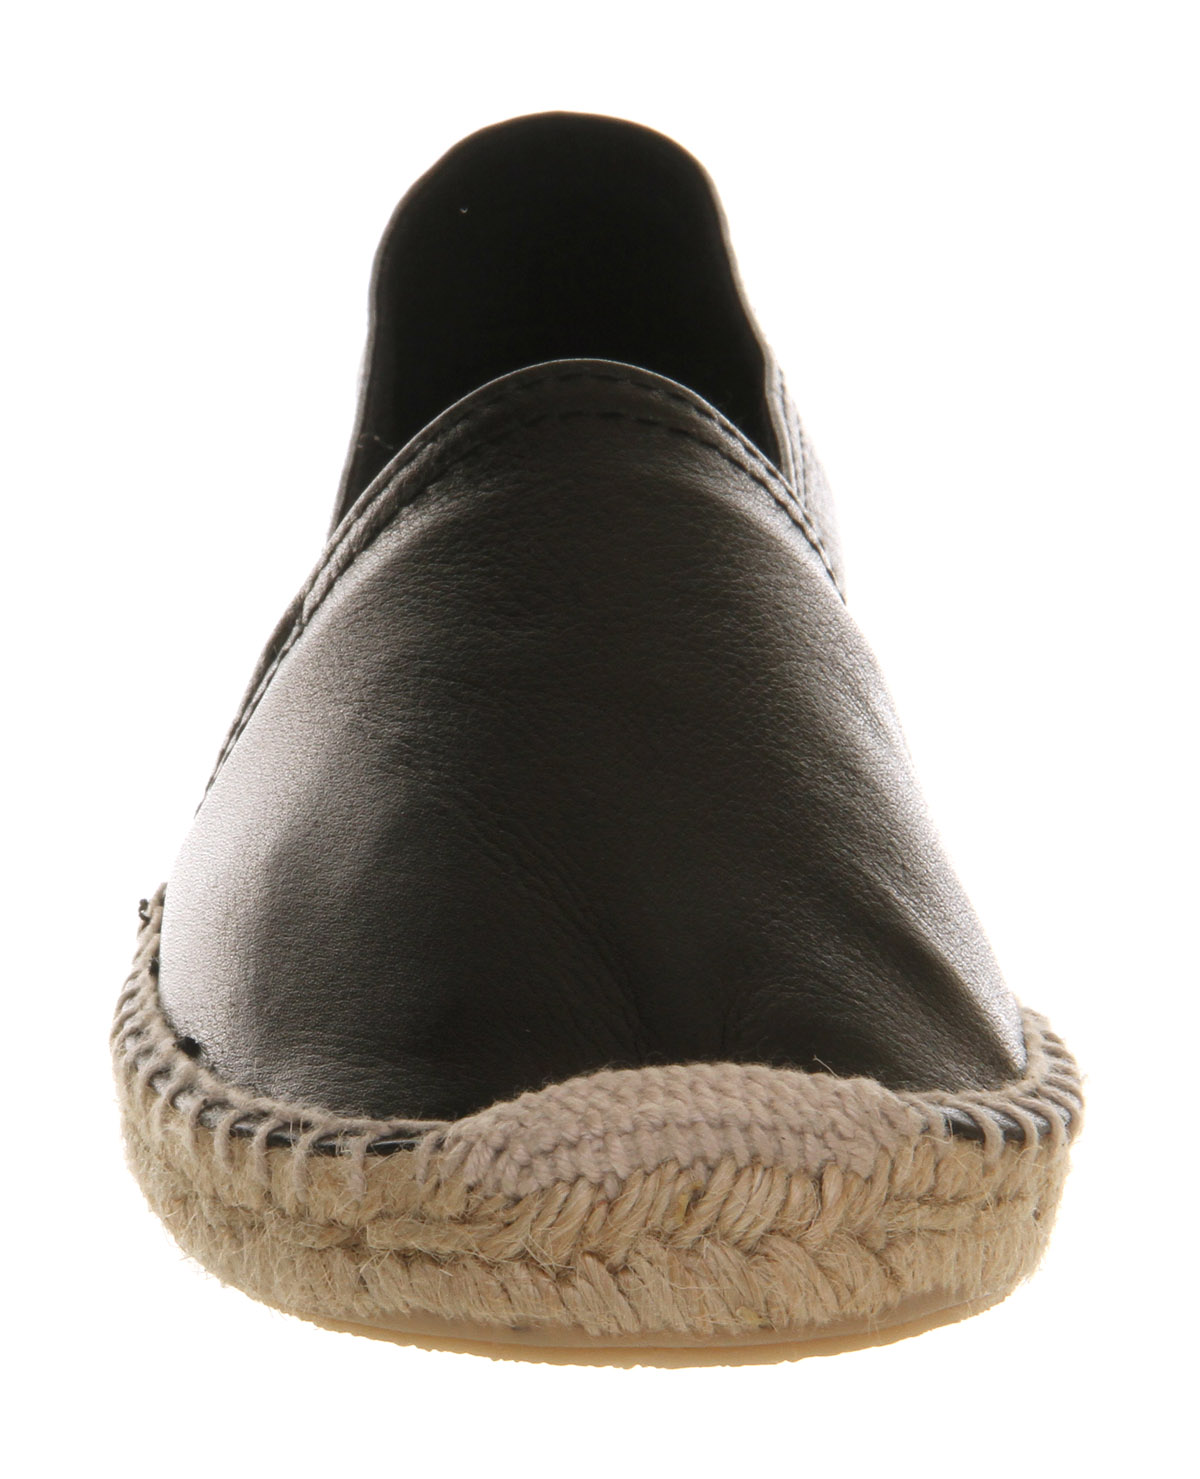 Office Kapture Espadrille Black Leather - Flats